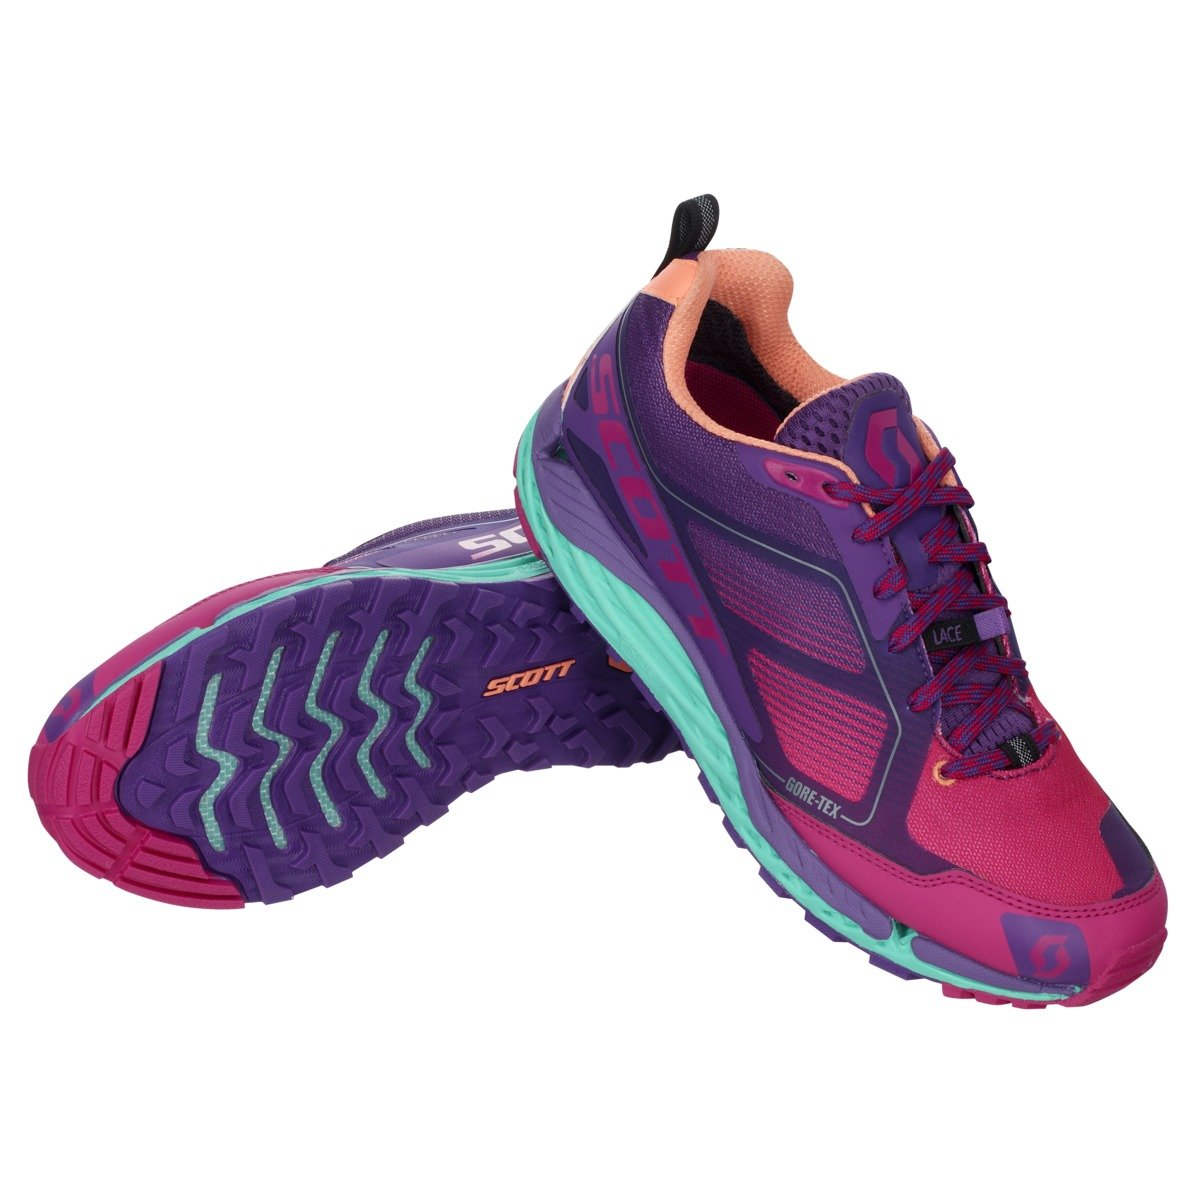 Scott Schuhe W's T2 Kinabalu GTX® 3.0 8.5 purple/purple SAMPLE 8.5 3.0 US purple/purple f5a069